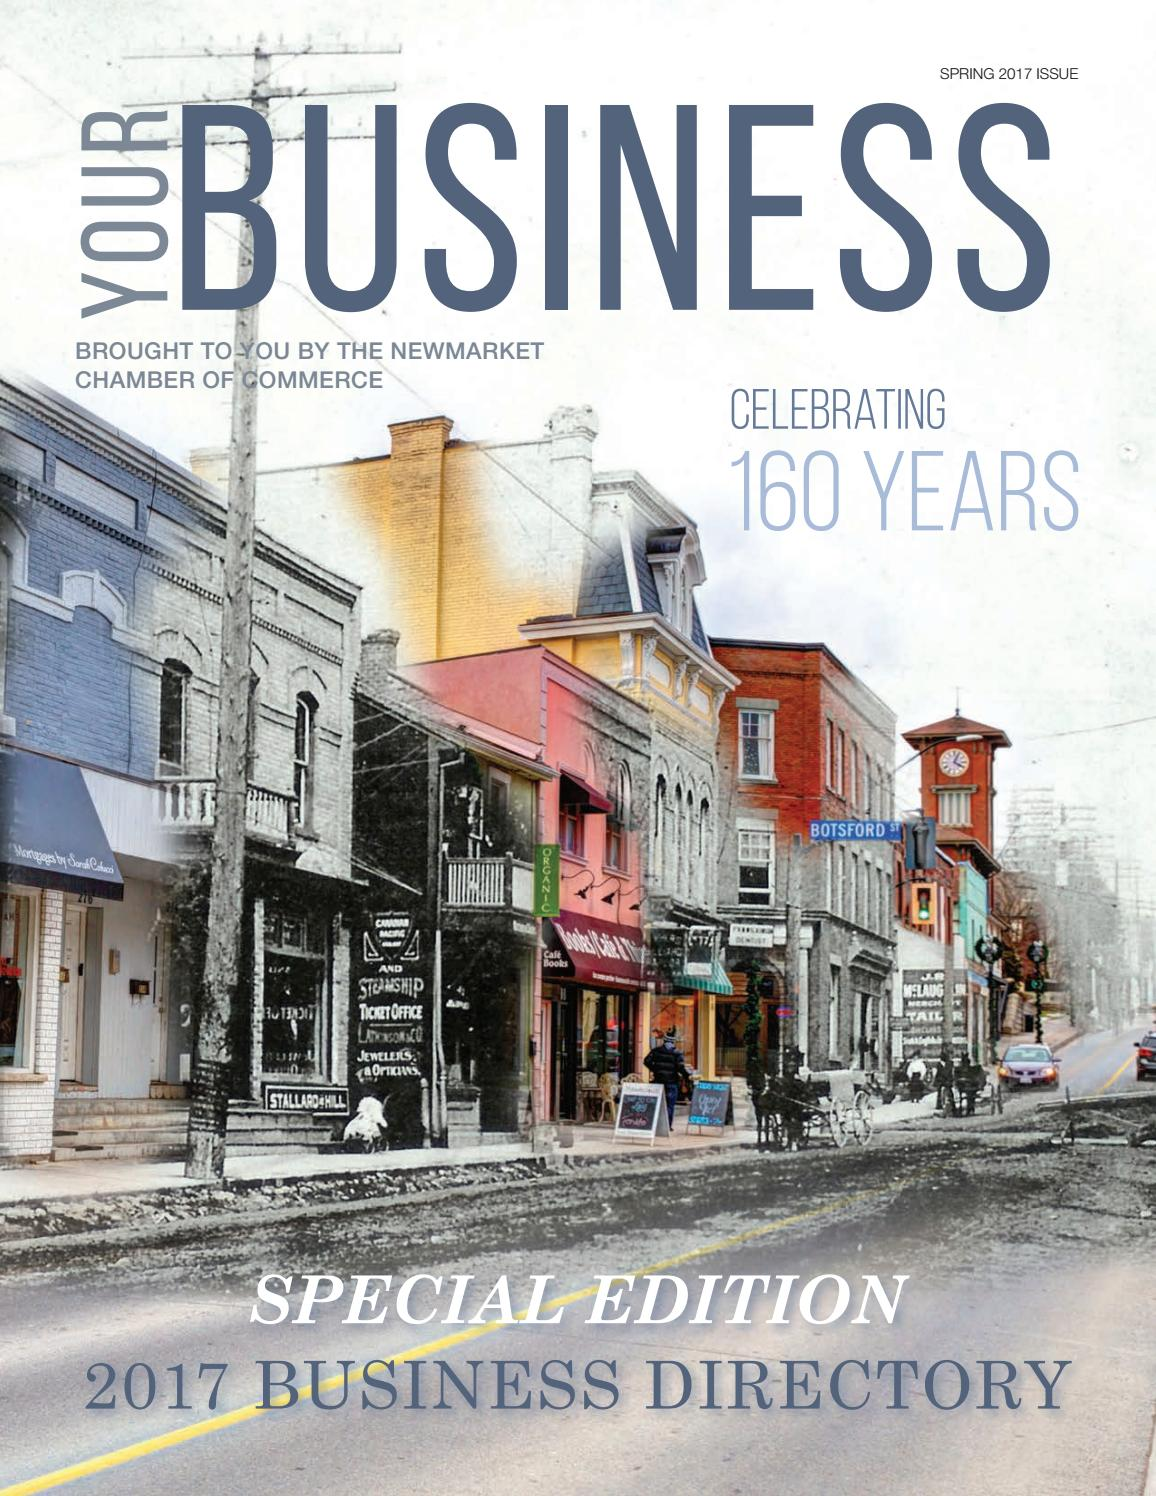 Your business spring 2017 directory by newmarket chamber of commerce issuu